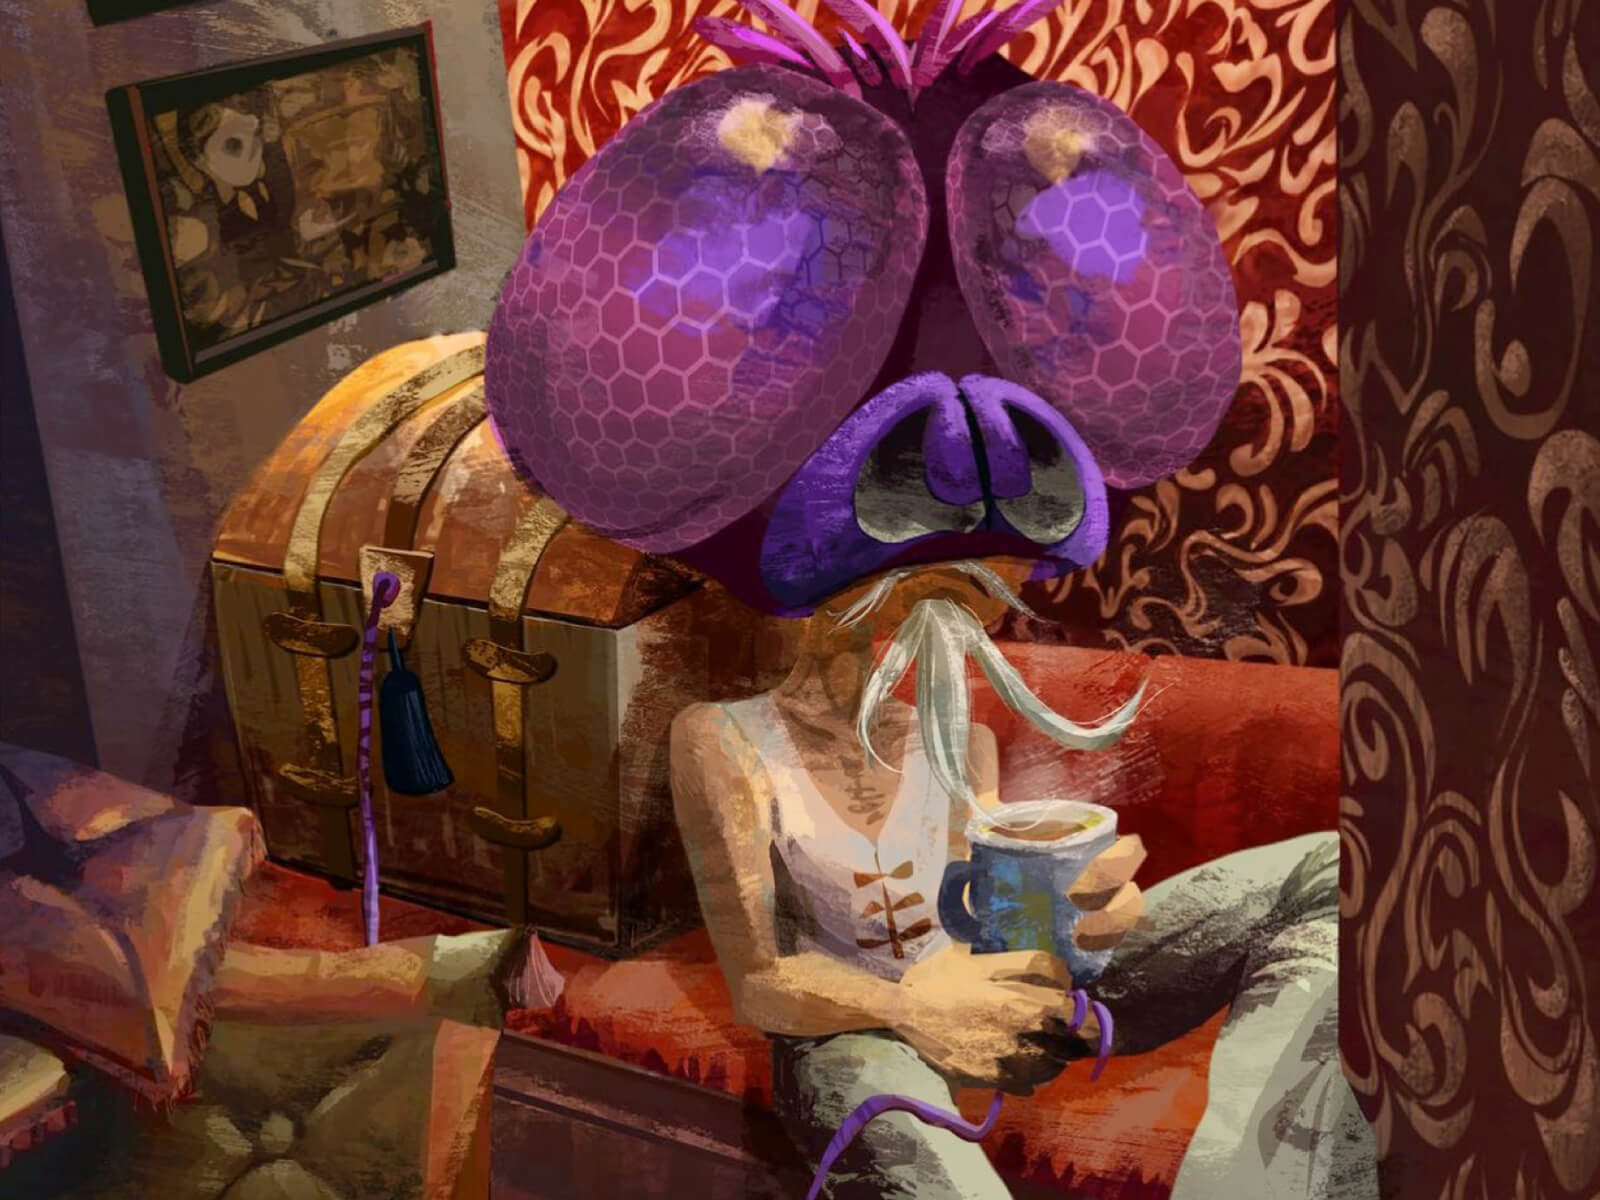 digital painting of a wizened old man with a large mosquito headpiece sitting on a couch with a steaming mug of coffee